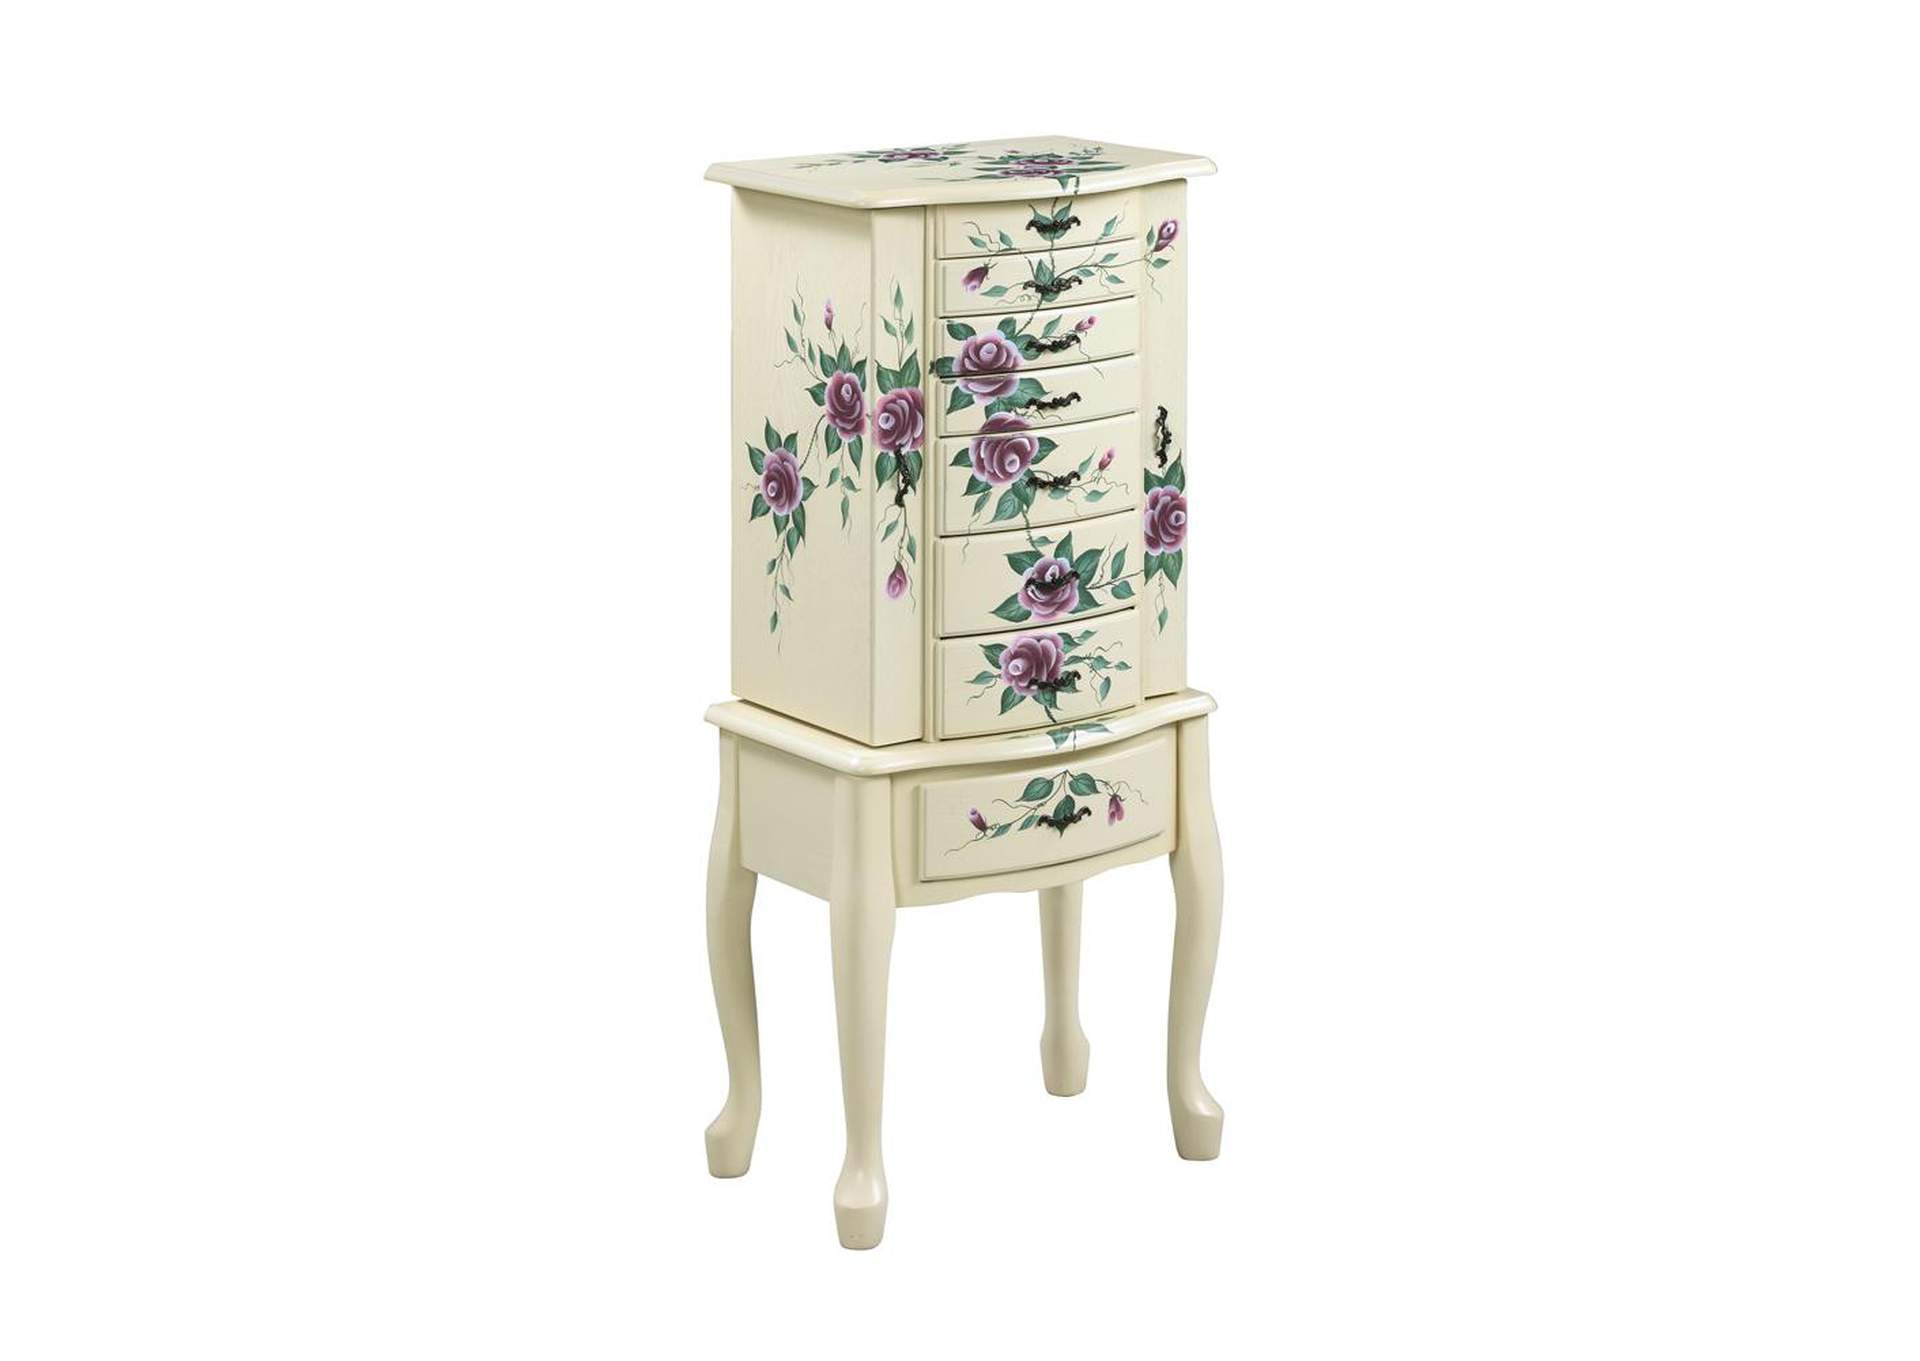 Accents Off-White Jewelry Armoire,Coaster Furniture